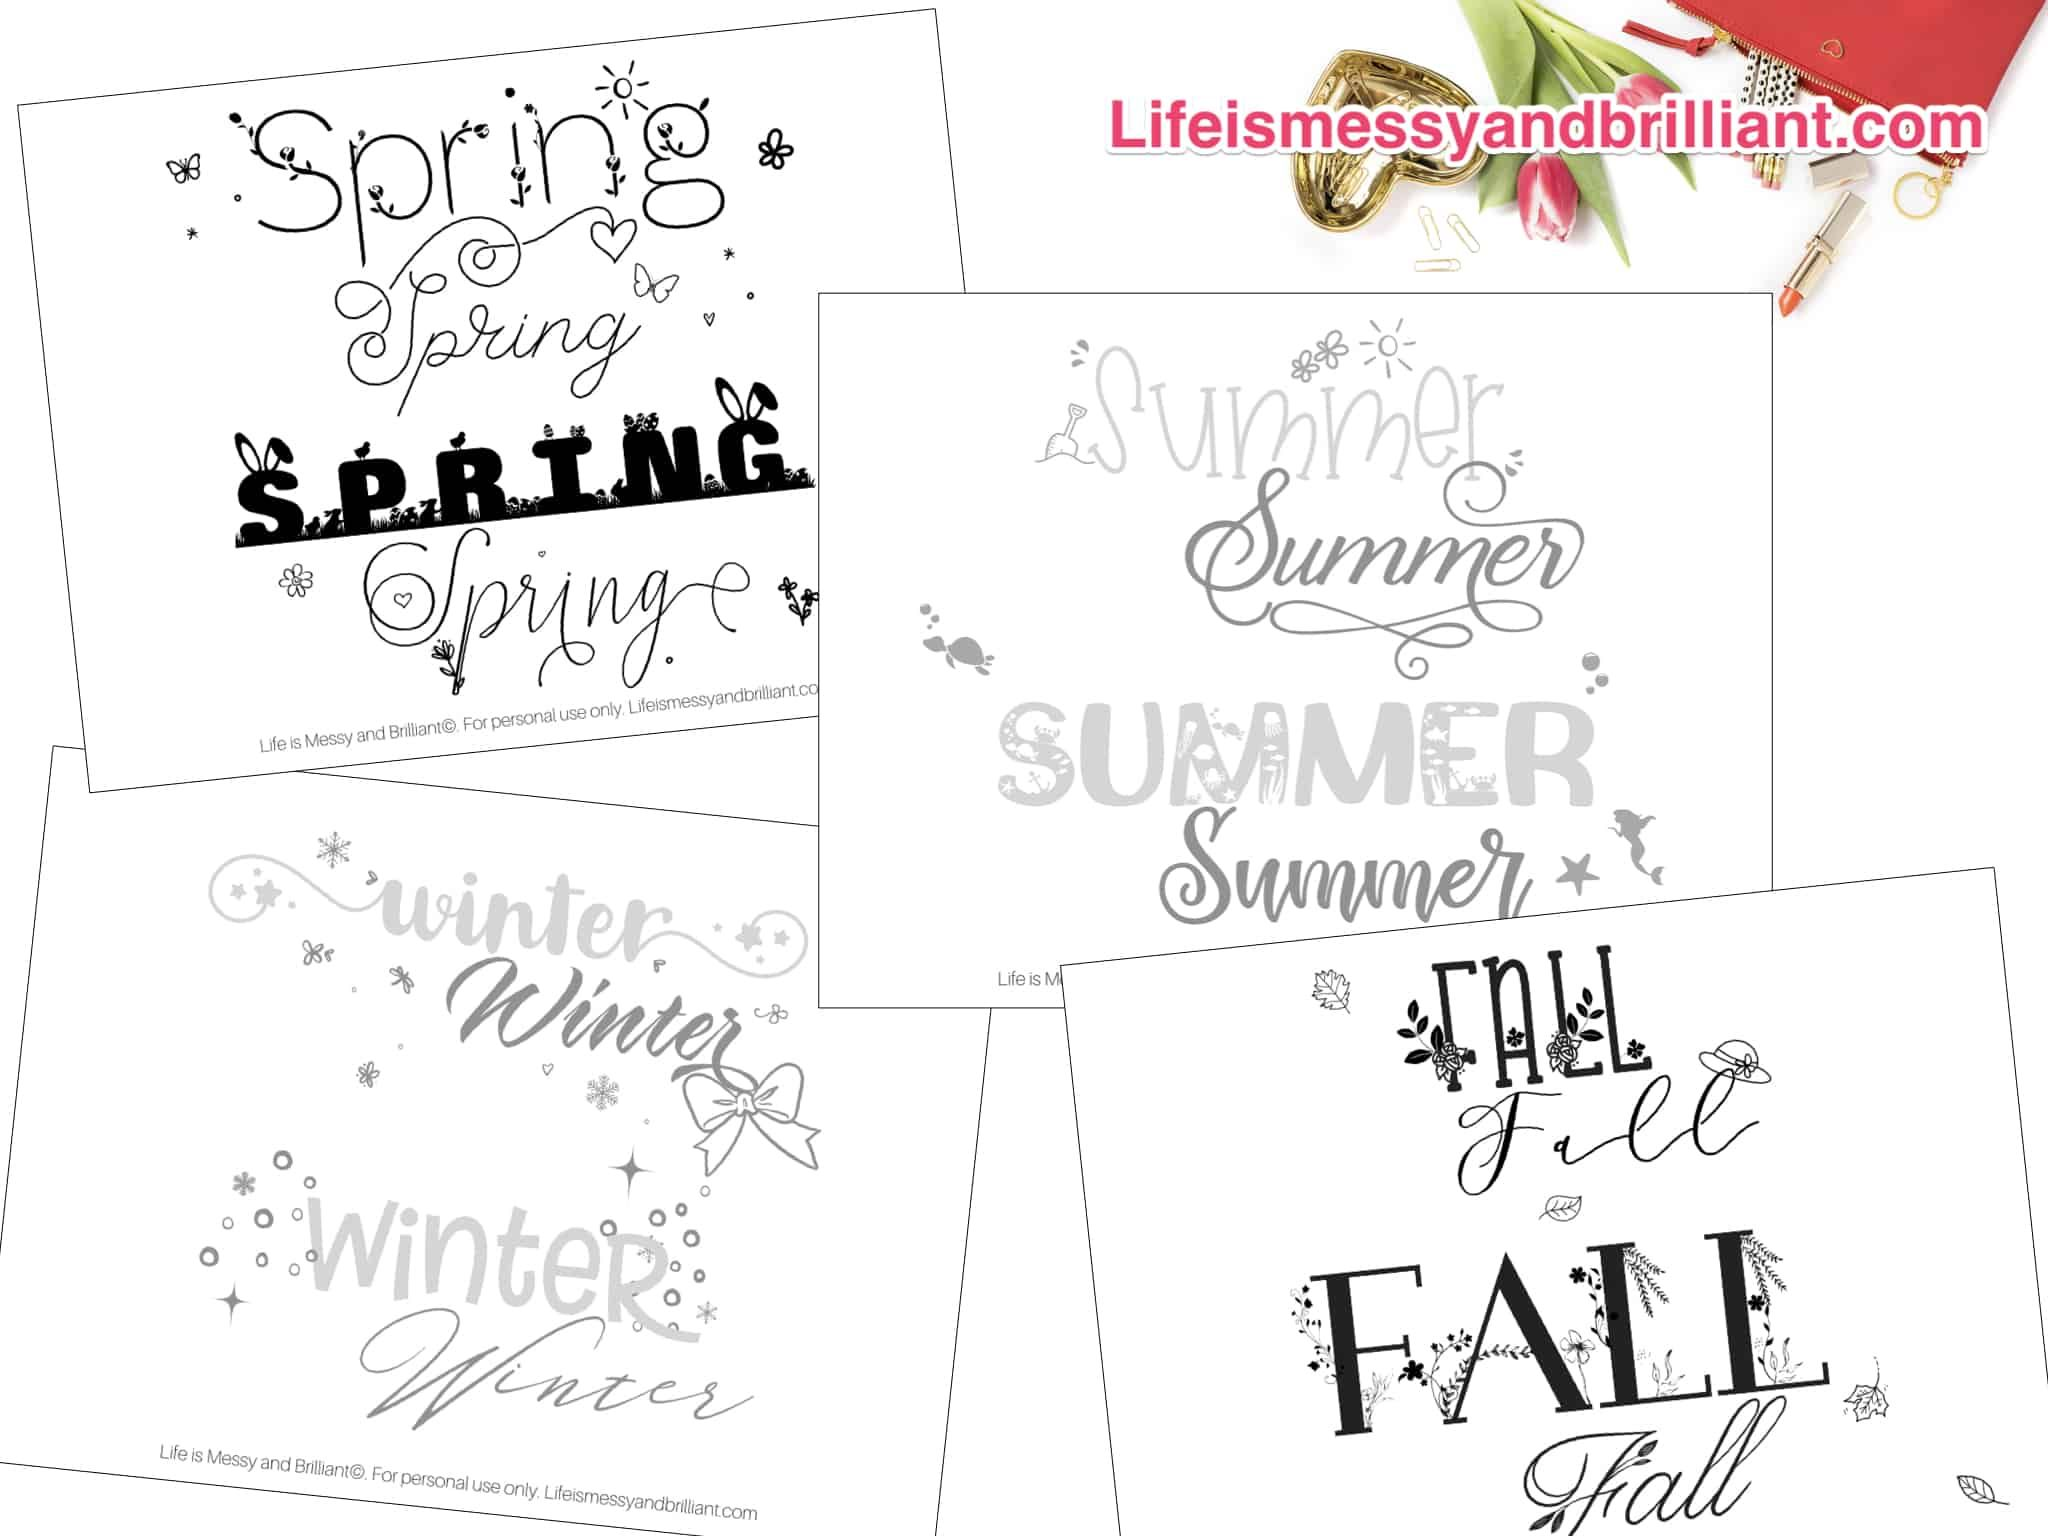 Free Seasons Of The Year Hand Lettering Practice Worksheets Hand Lettering Practice Hand Lettering Worksheet Hand Lettering Practice Sheets [ 1536 x 2048 Pixel ]